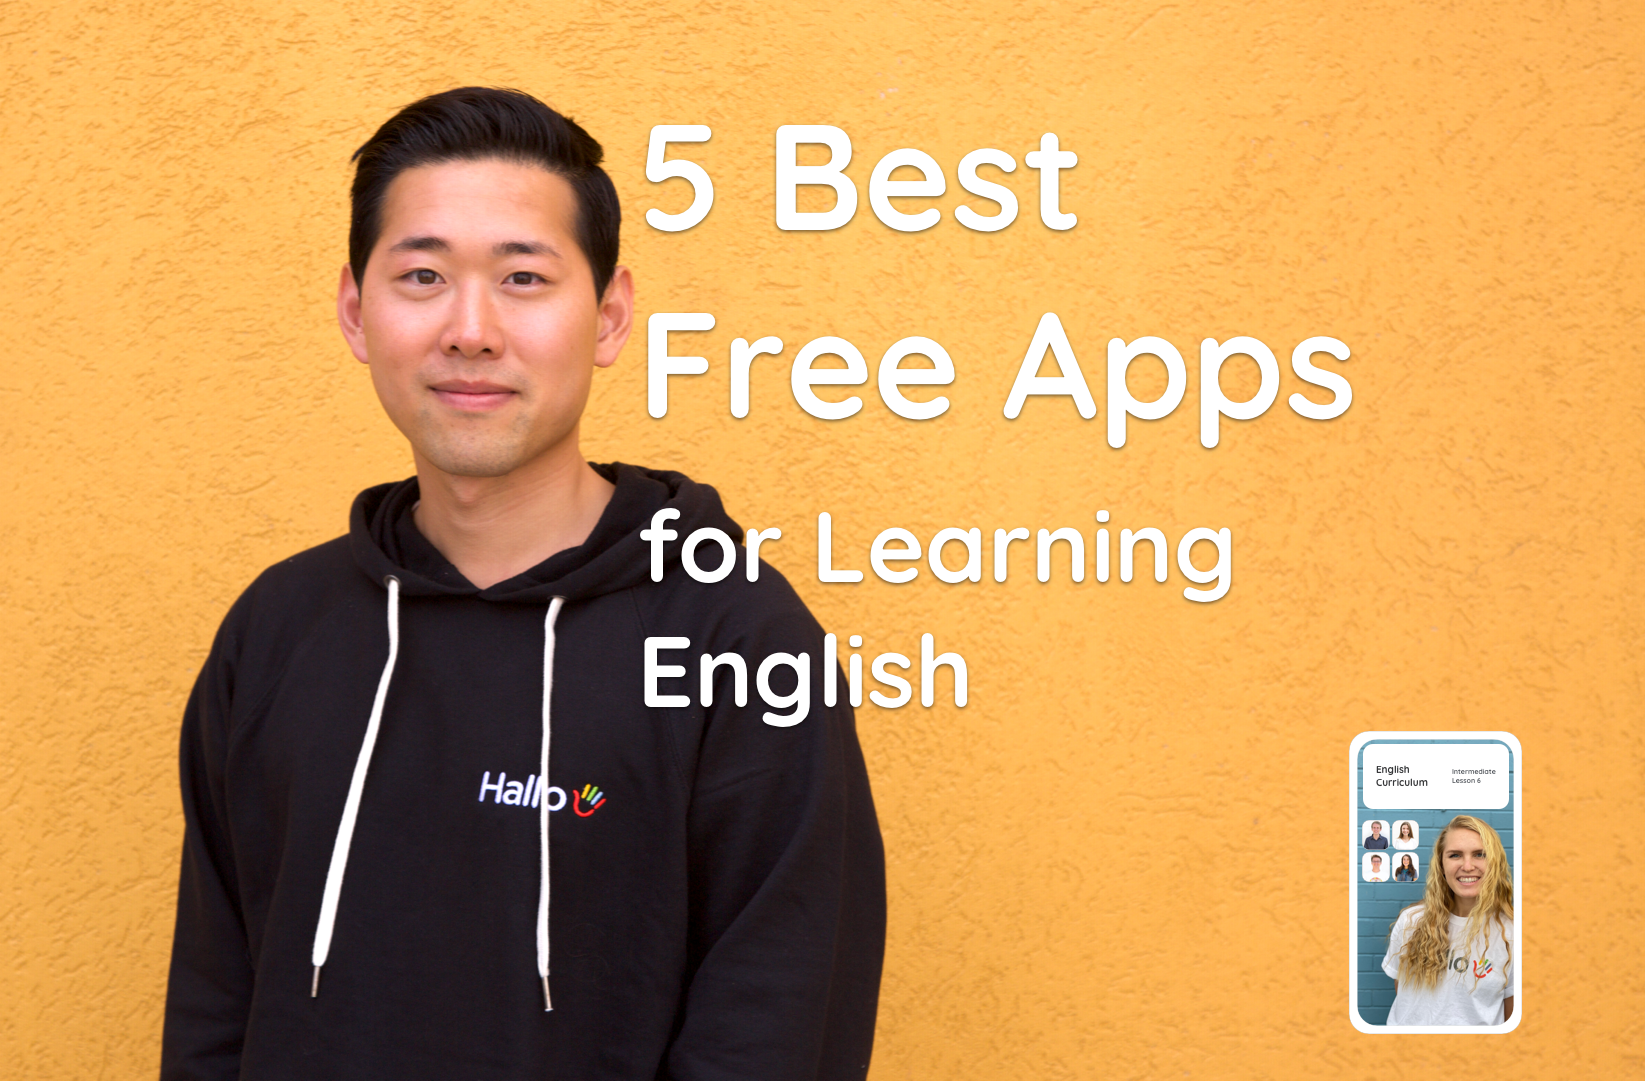 Top 5 Best Free Apps for Learning English